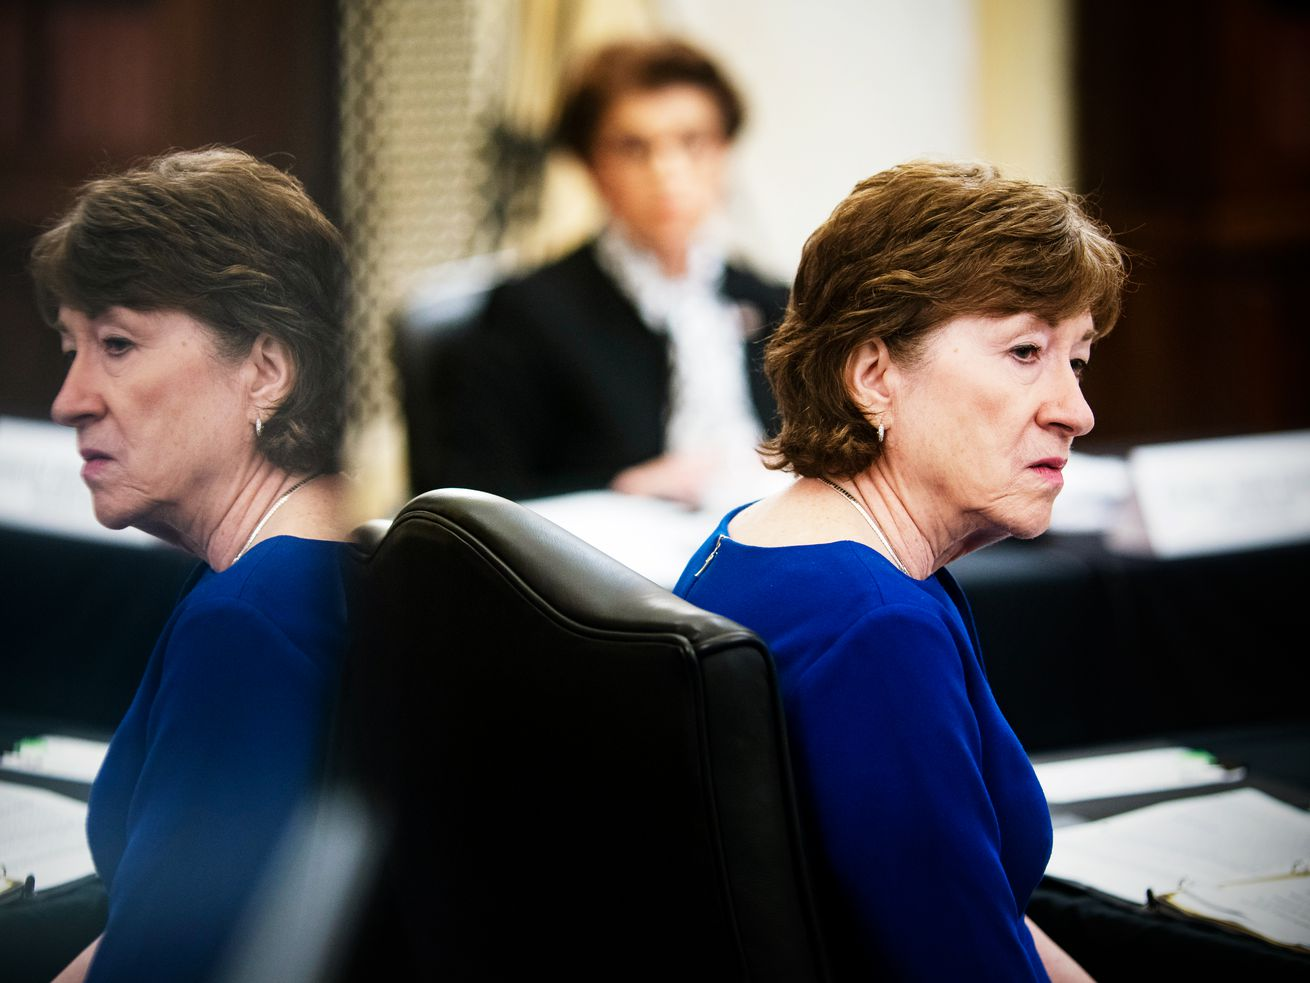 Sen. Susan Collins (R-ME) attends a committee hearing